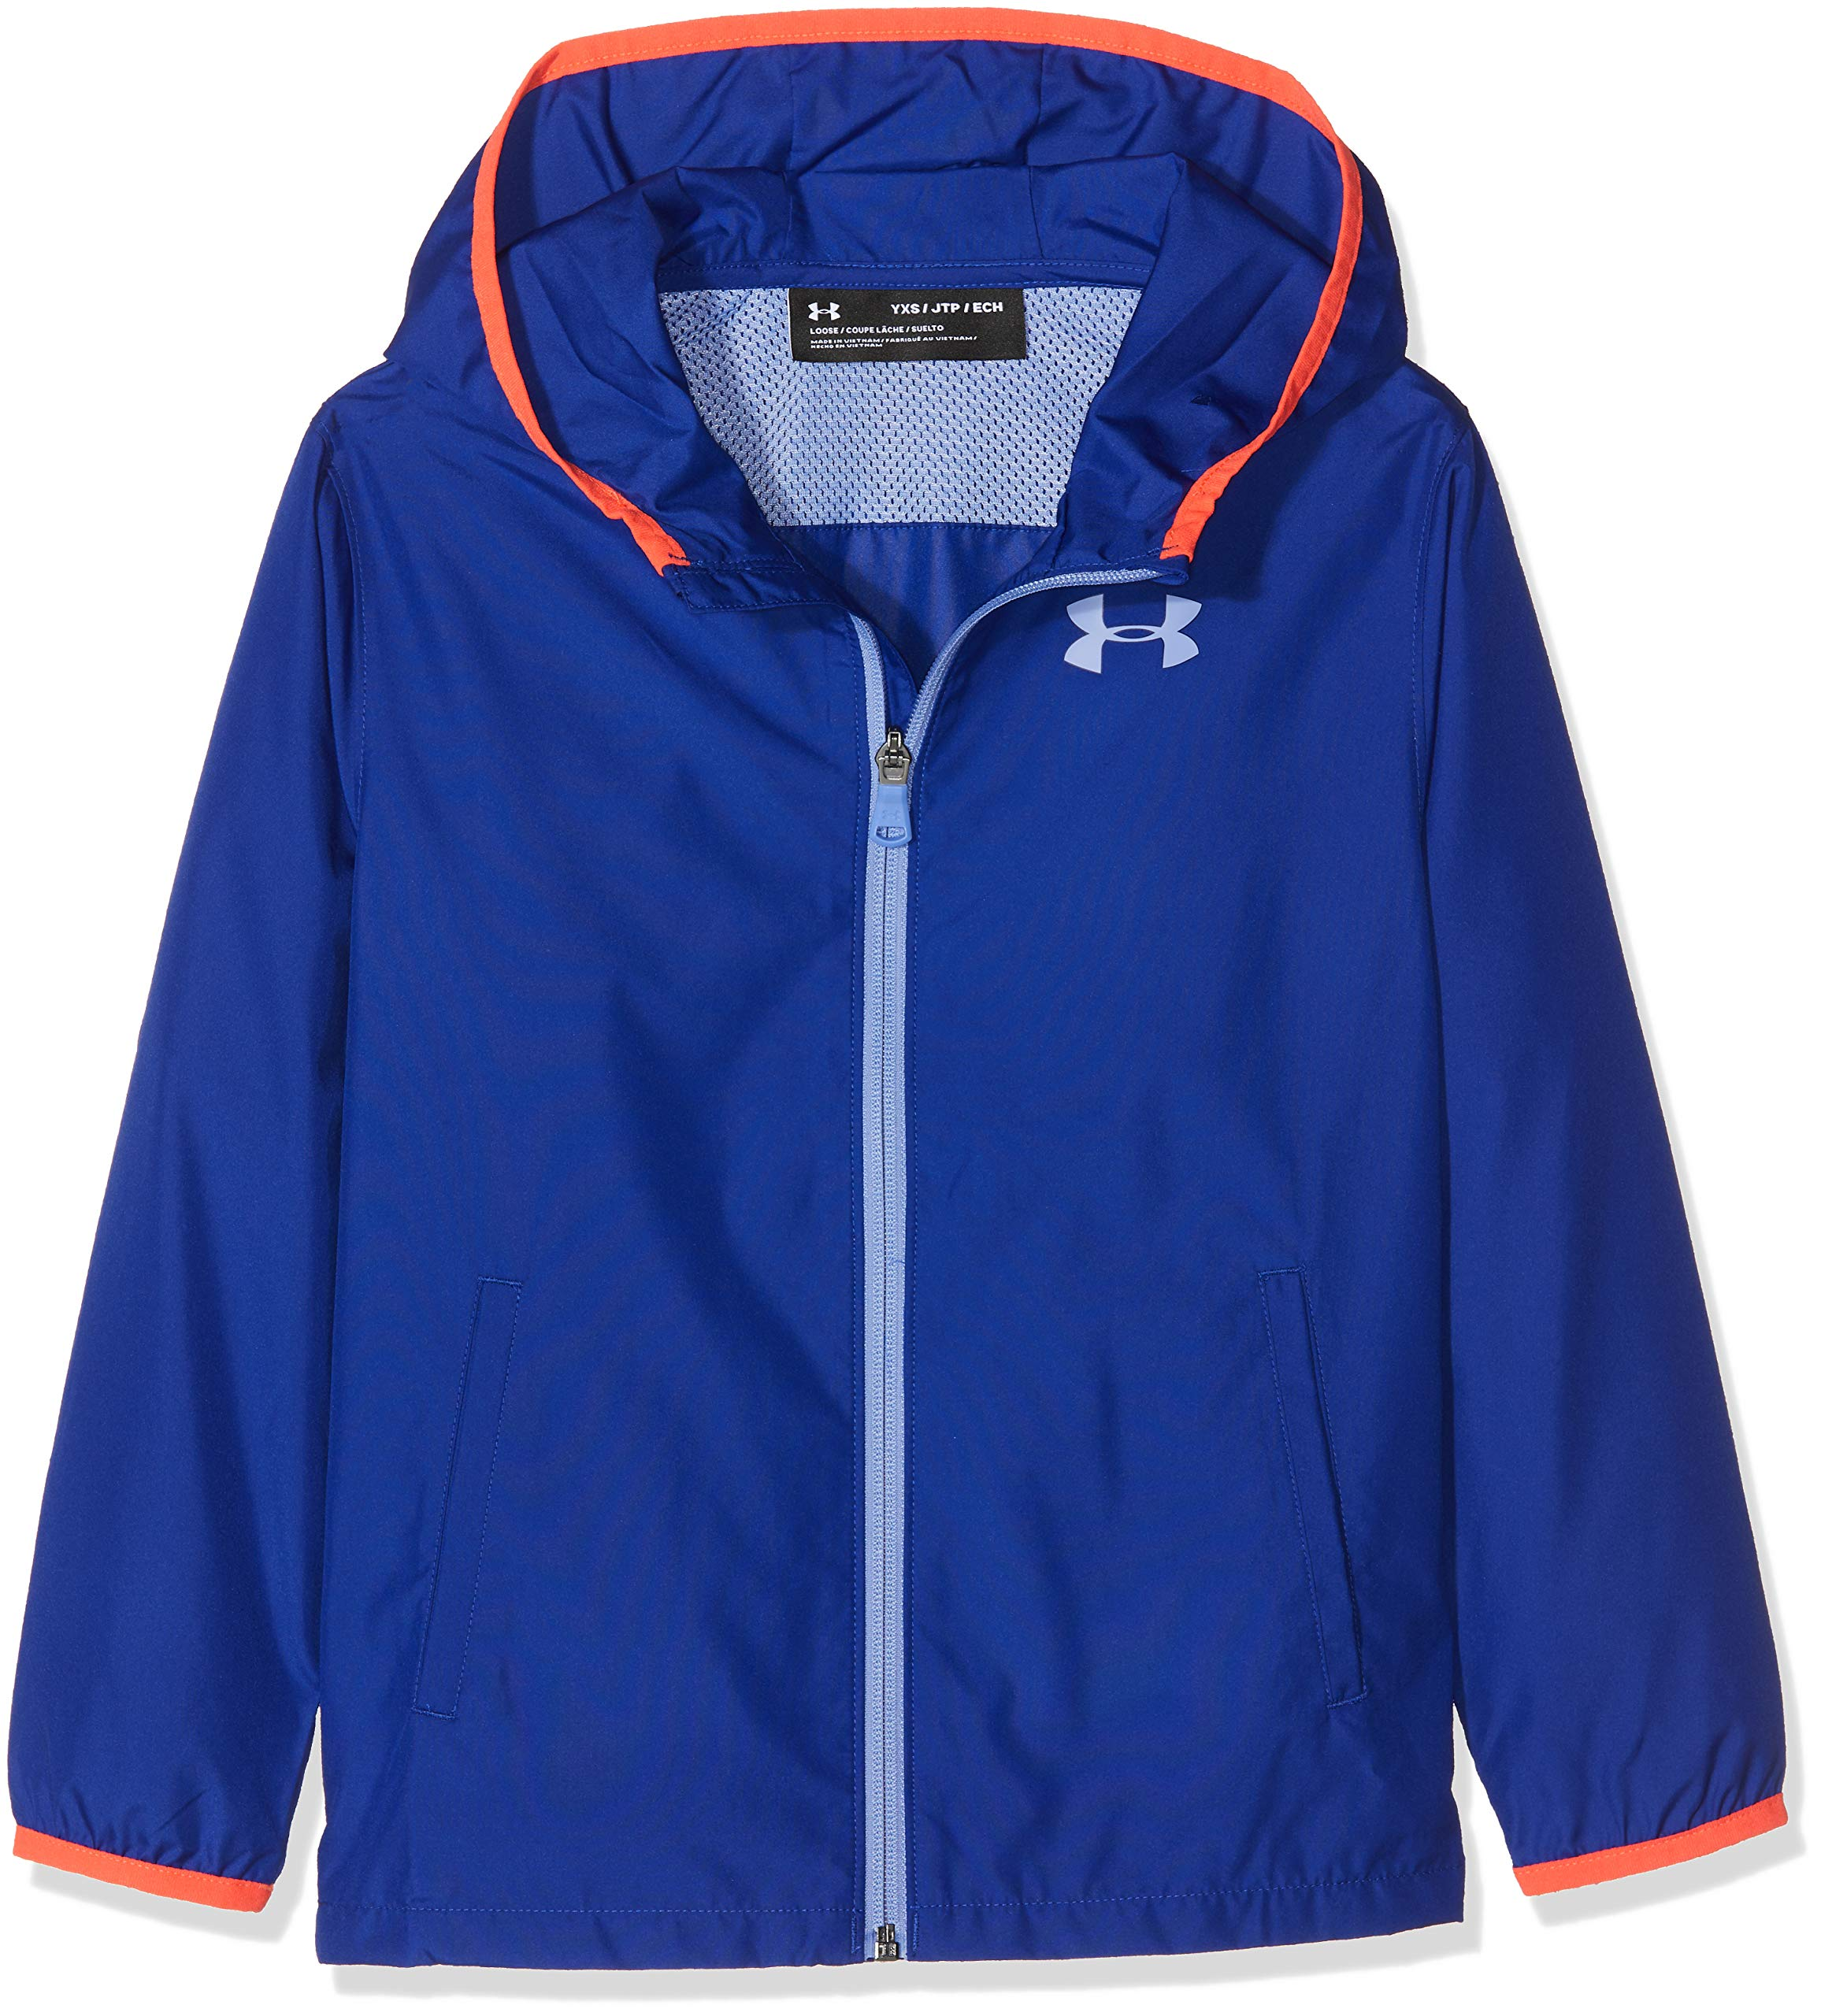 Under Armour Girls' Sackpack Jacket, Formation Blue (574)/Talc Blue, Youth Large by Under Armour